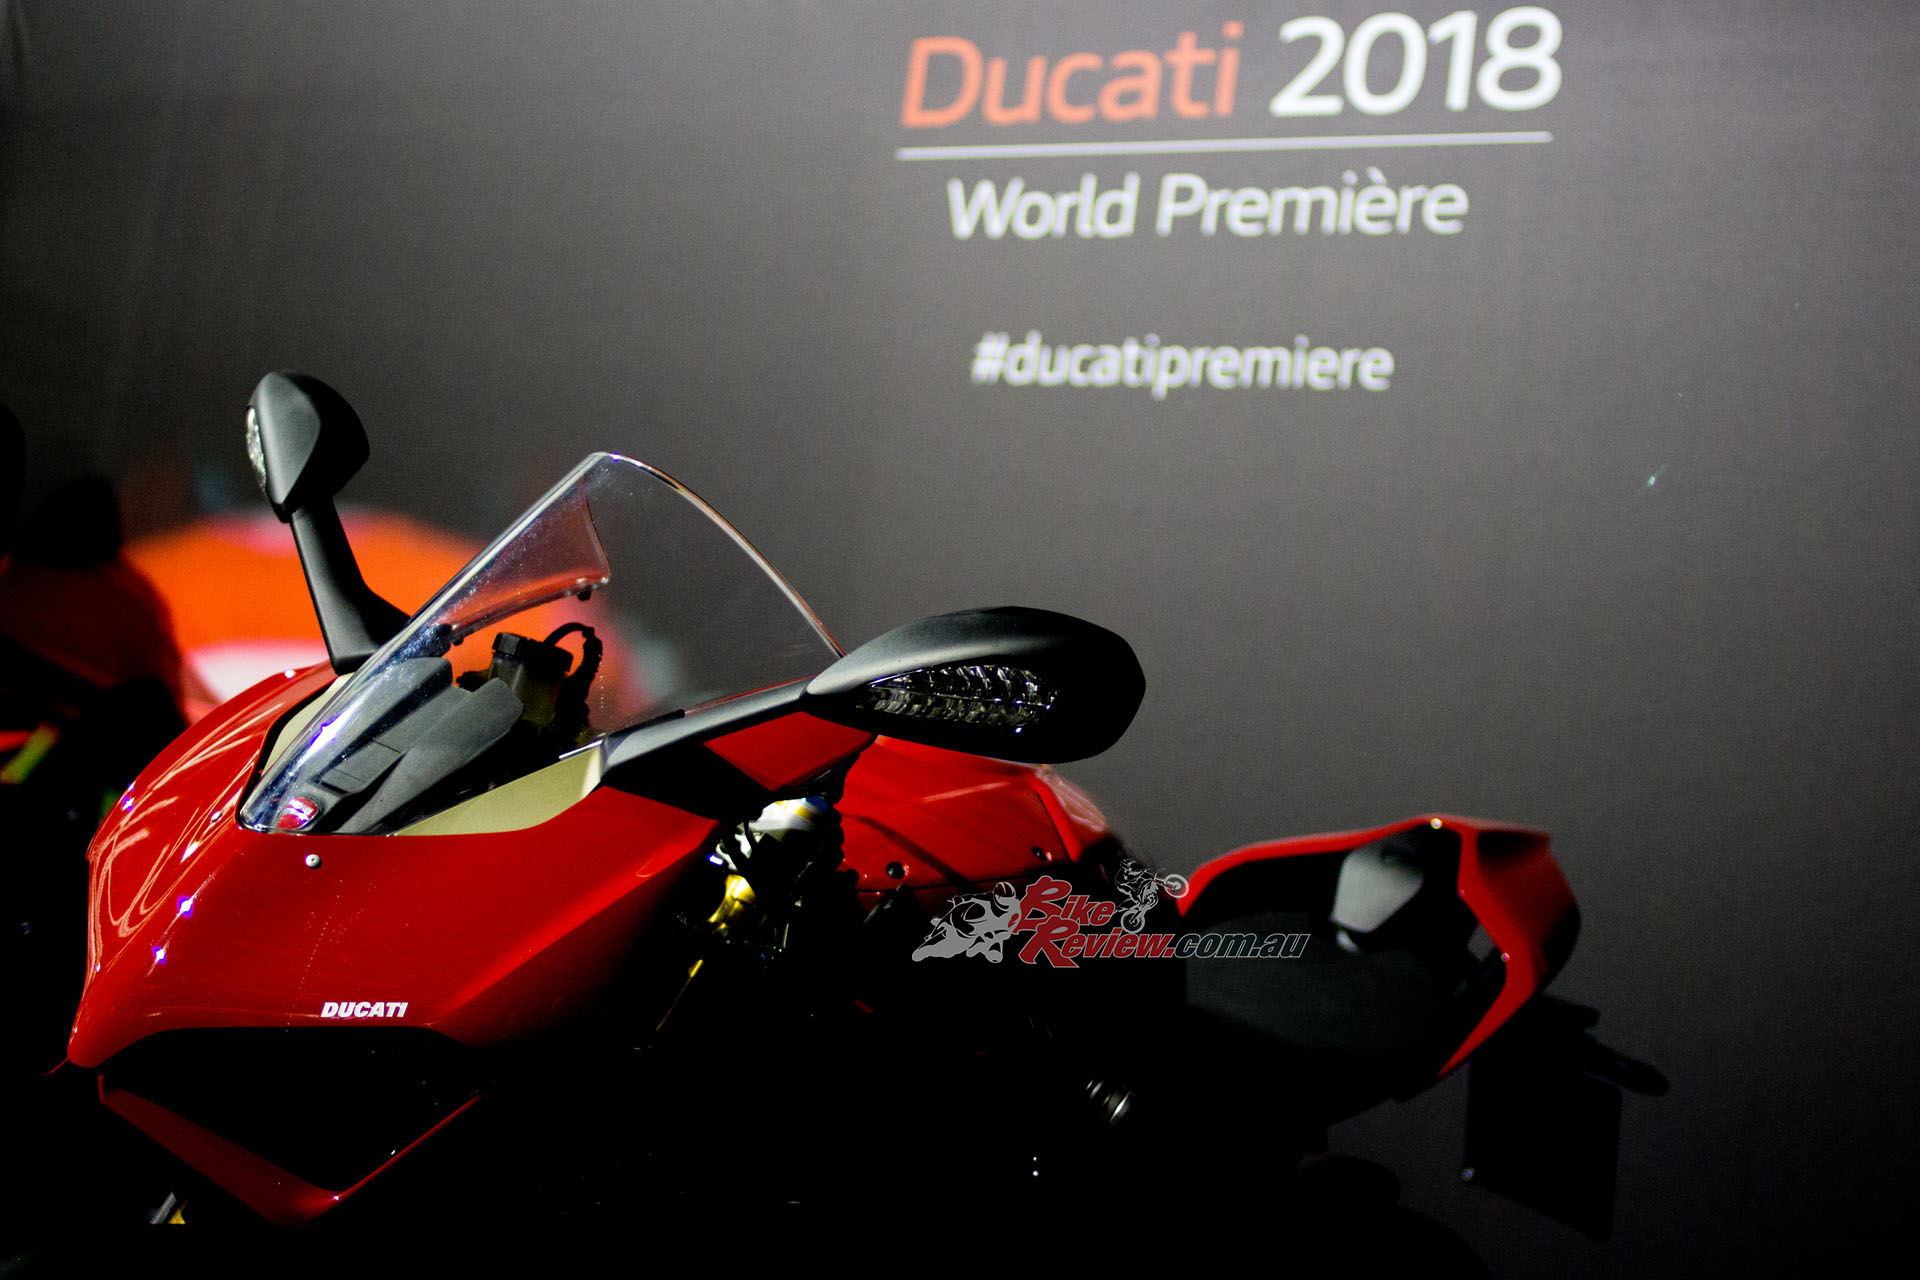 Ducati premiered their new V4 variants